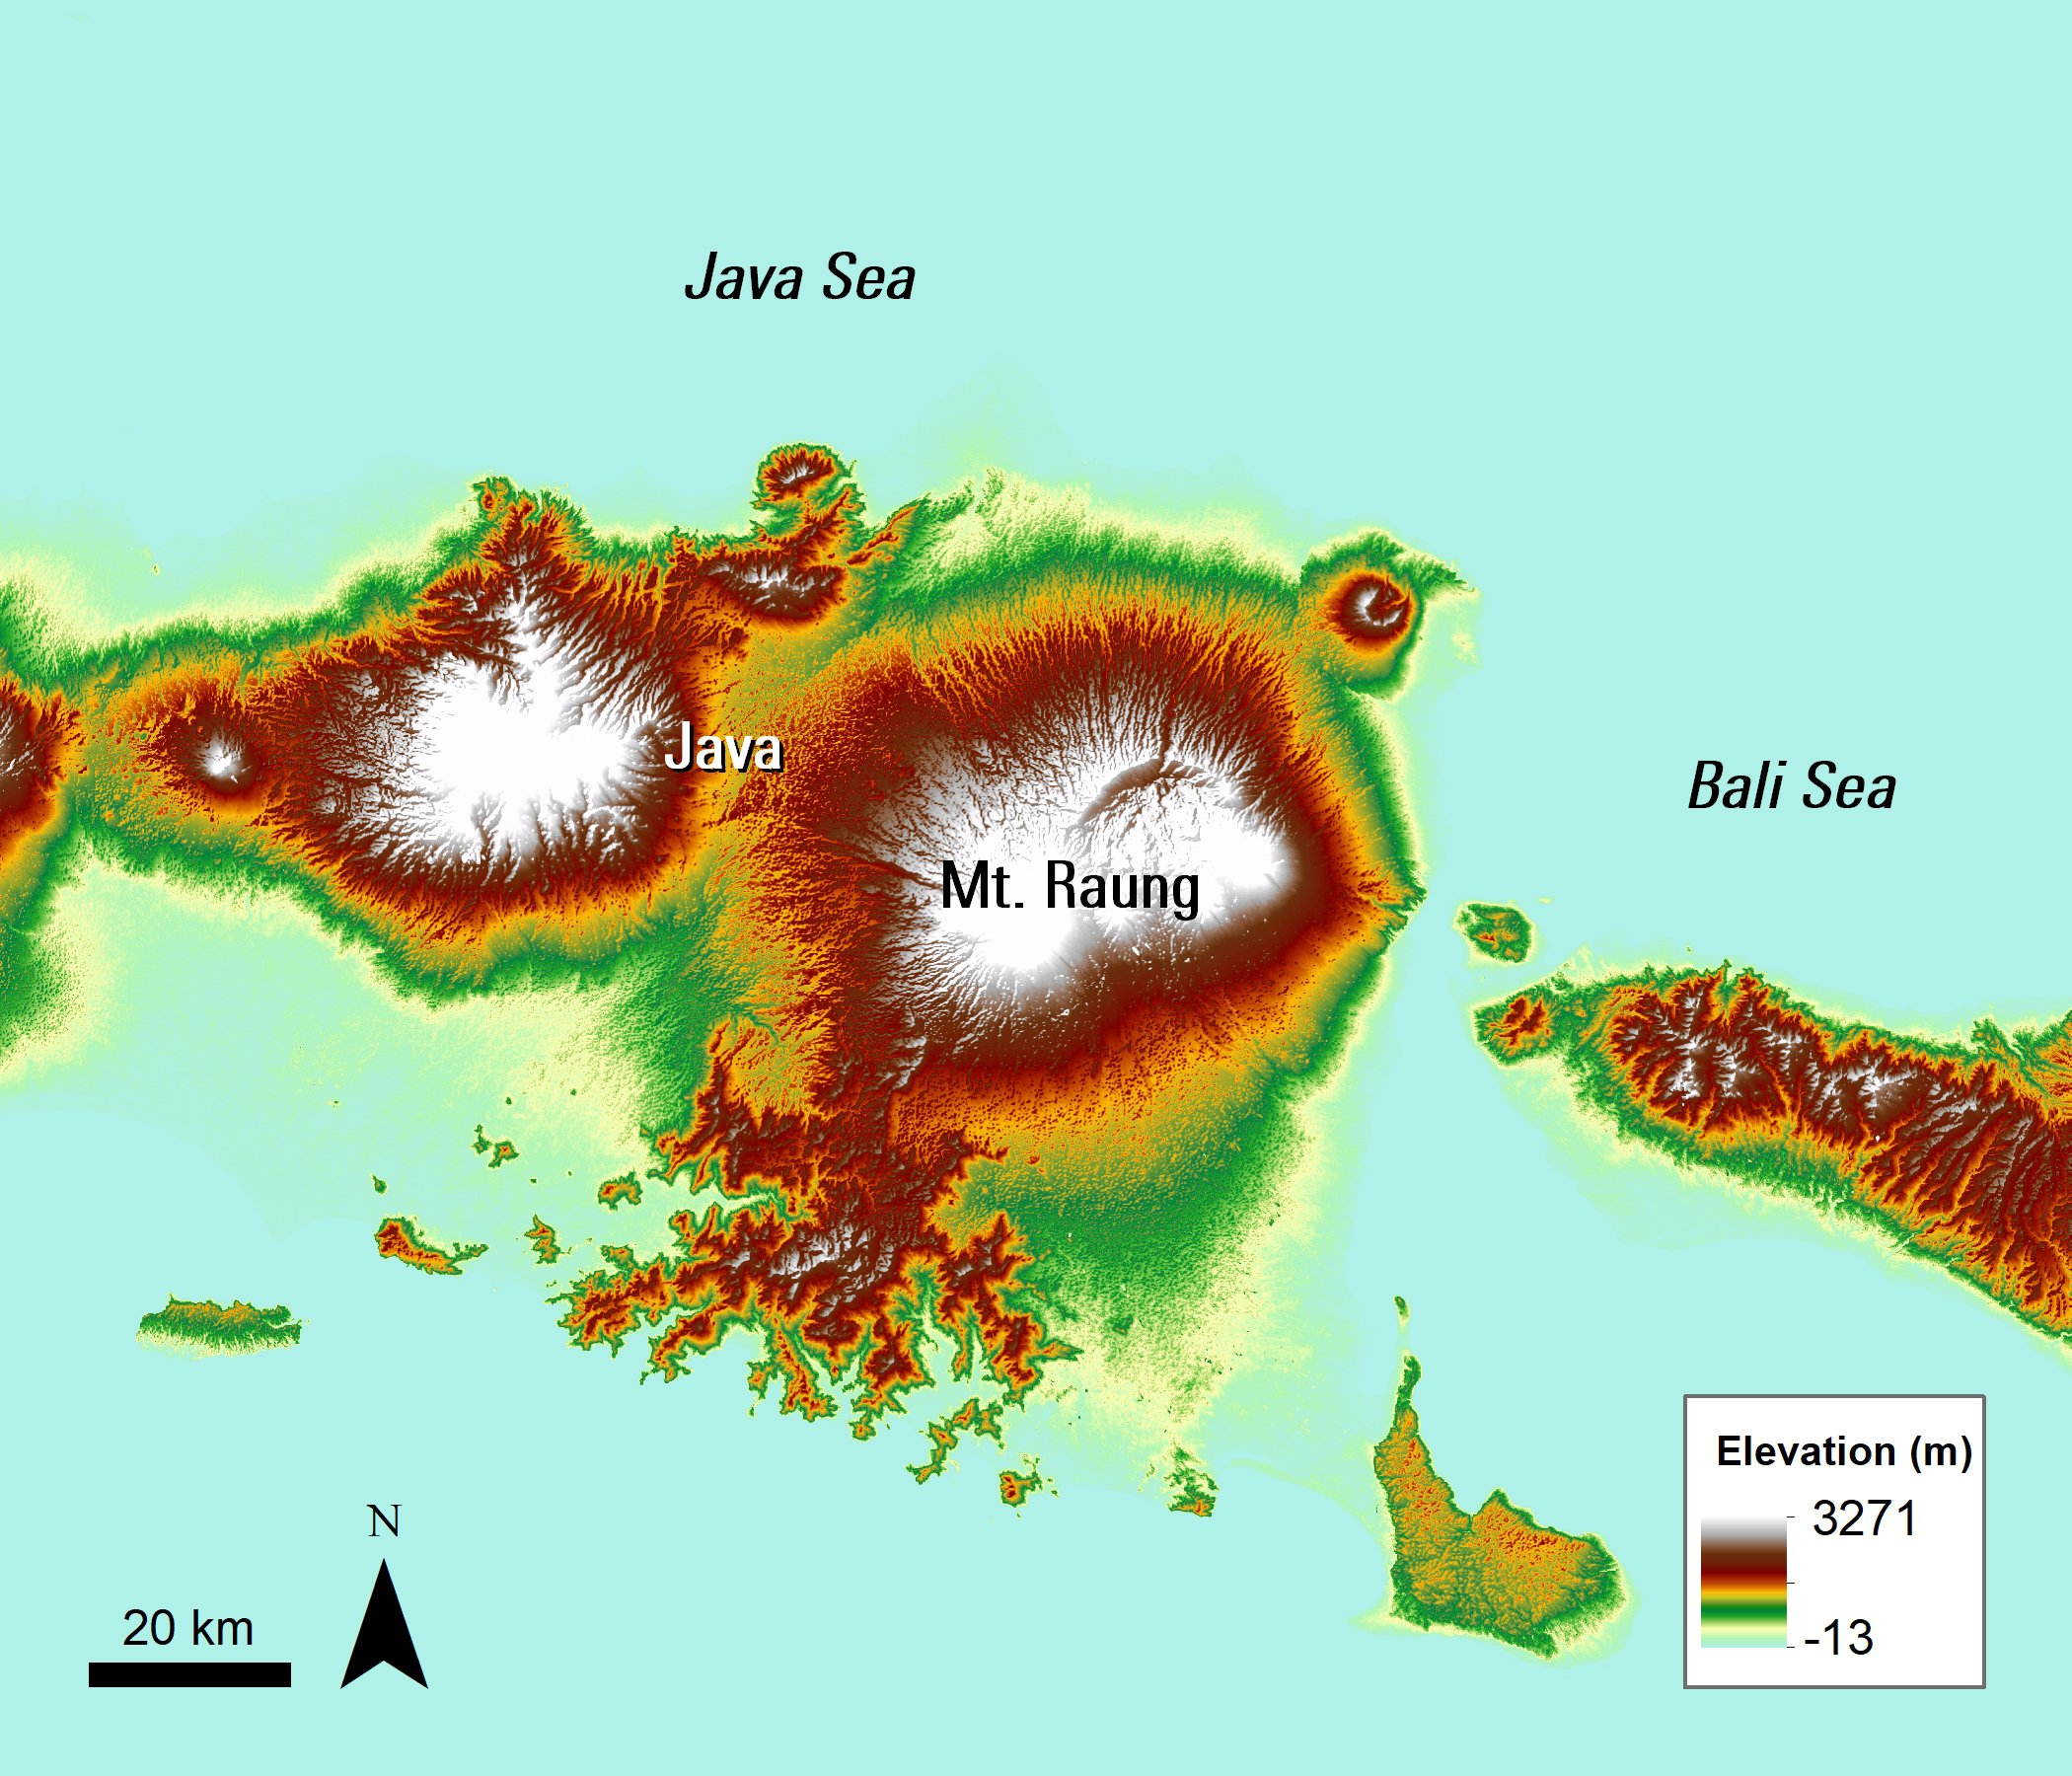 An ASTER GDEM image of Mt. Raung and the surrounding area.